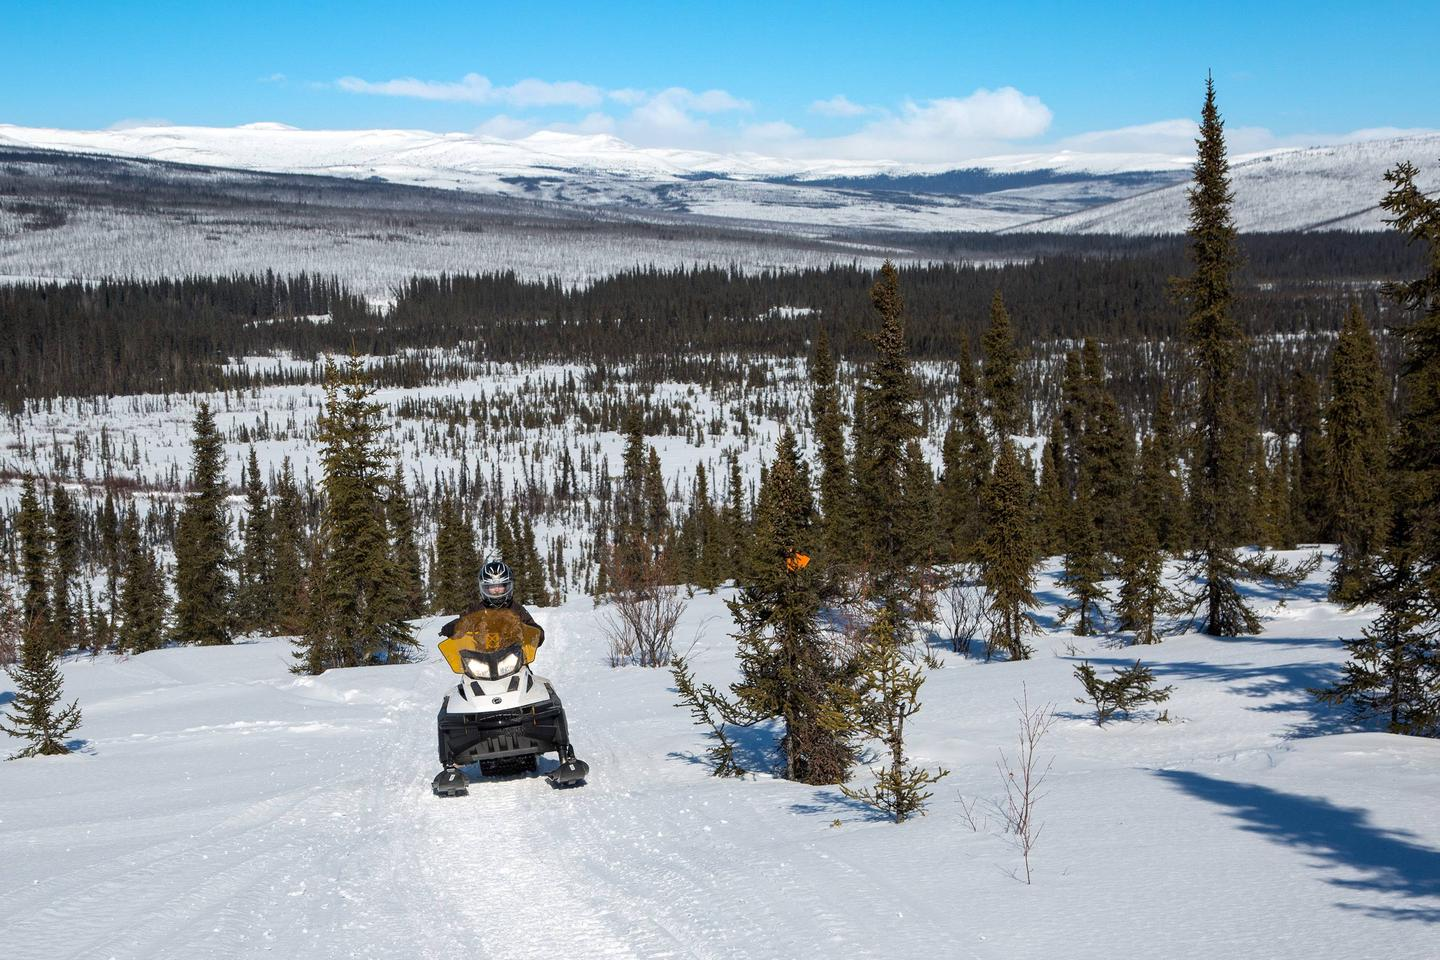 A snowmobile rider climbs a hill in front of a valley.The Bear Creek Trail, the access route to Richard's Cabin, drops down a big hill into the Bear Creek drainage a few miles from the cabin.